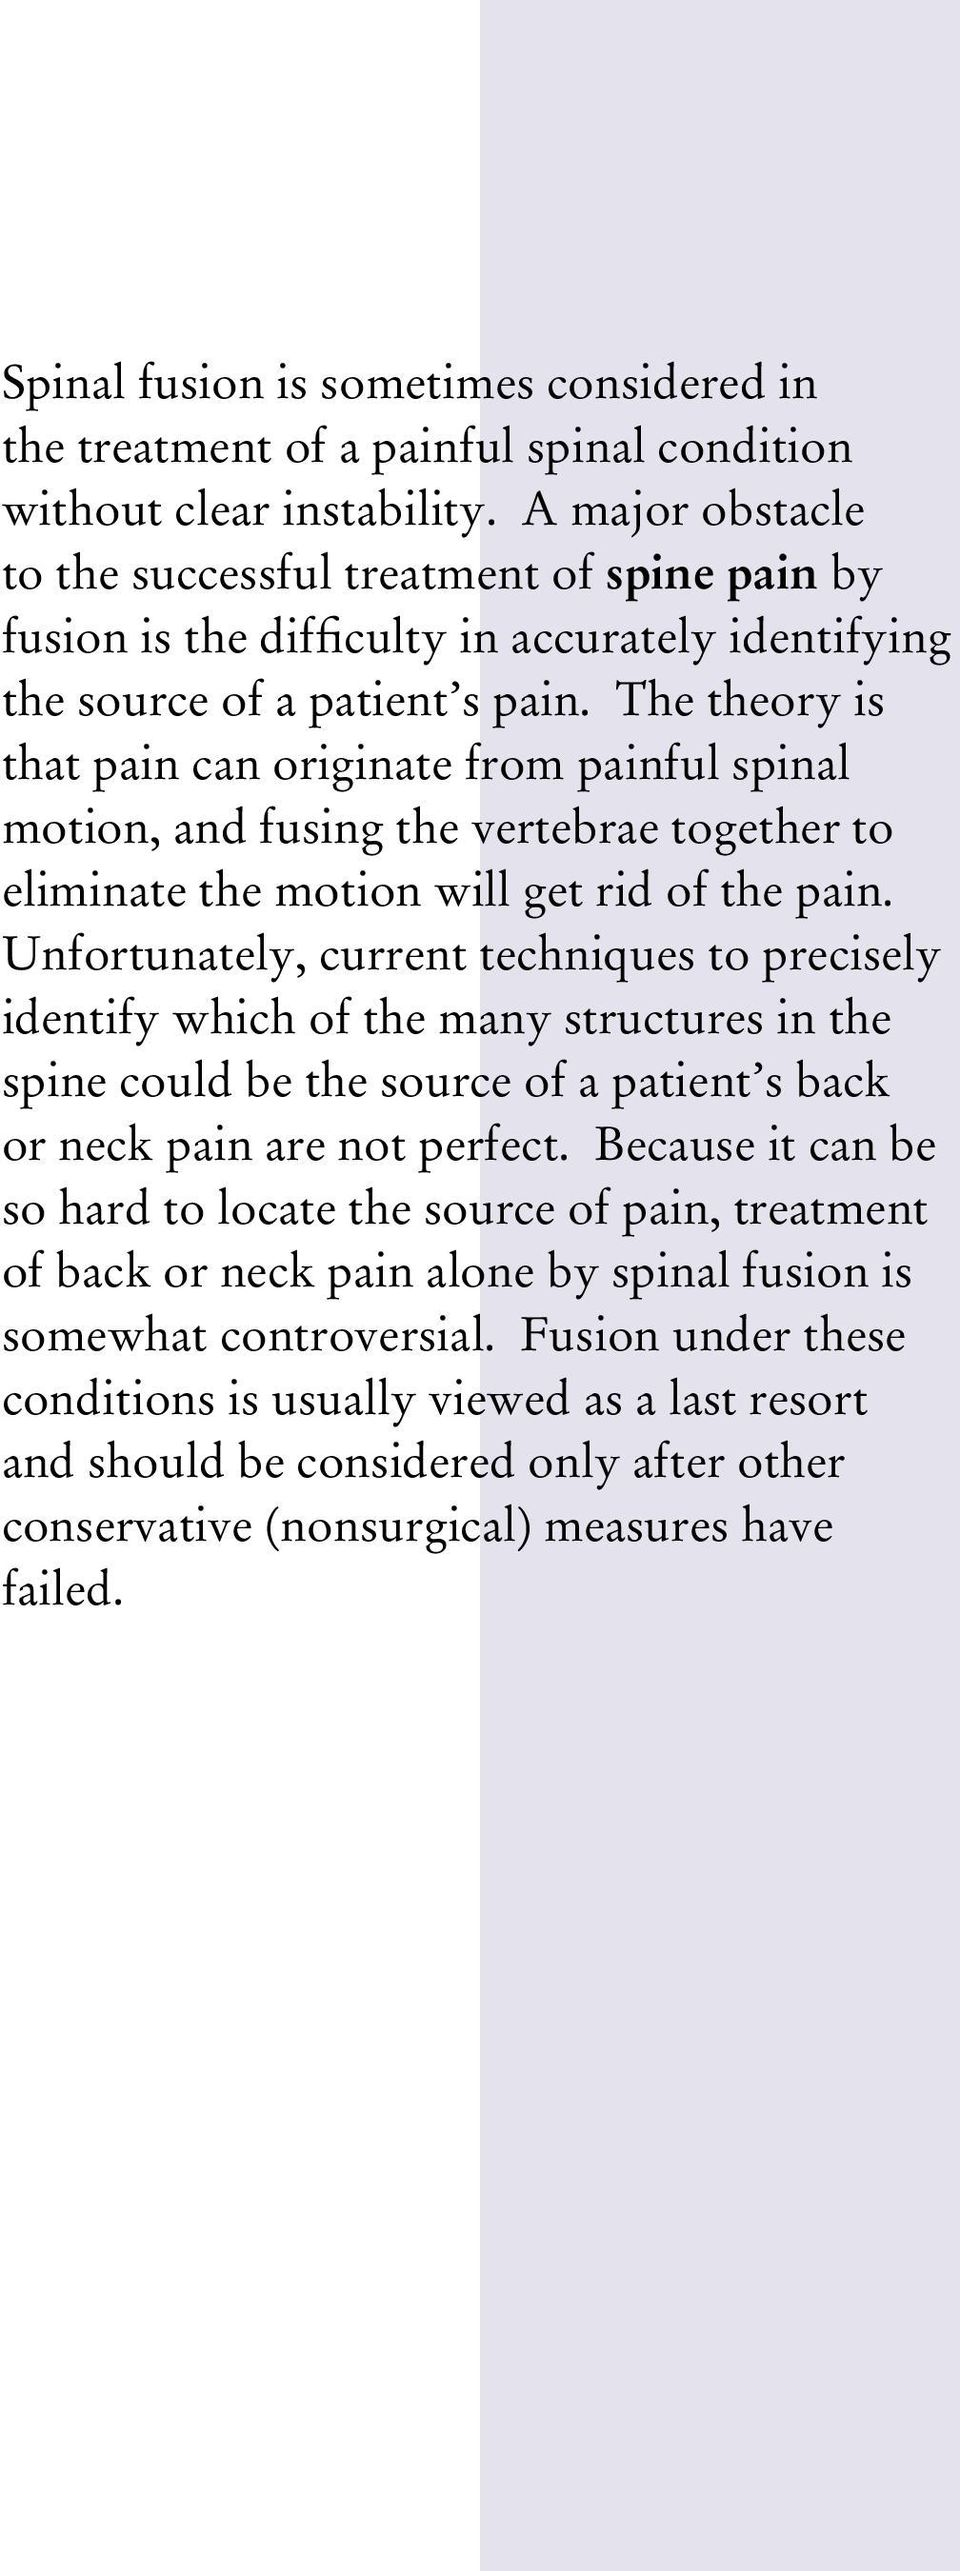 The theory is that pain can originate from painful spinal motion, and fusing the vertebrae together to eliminate the motion will get rid of the pain.